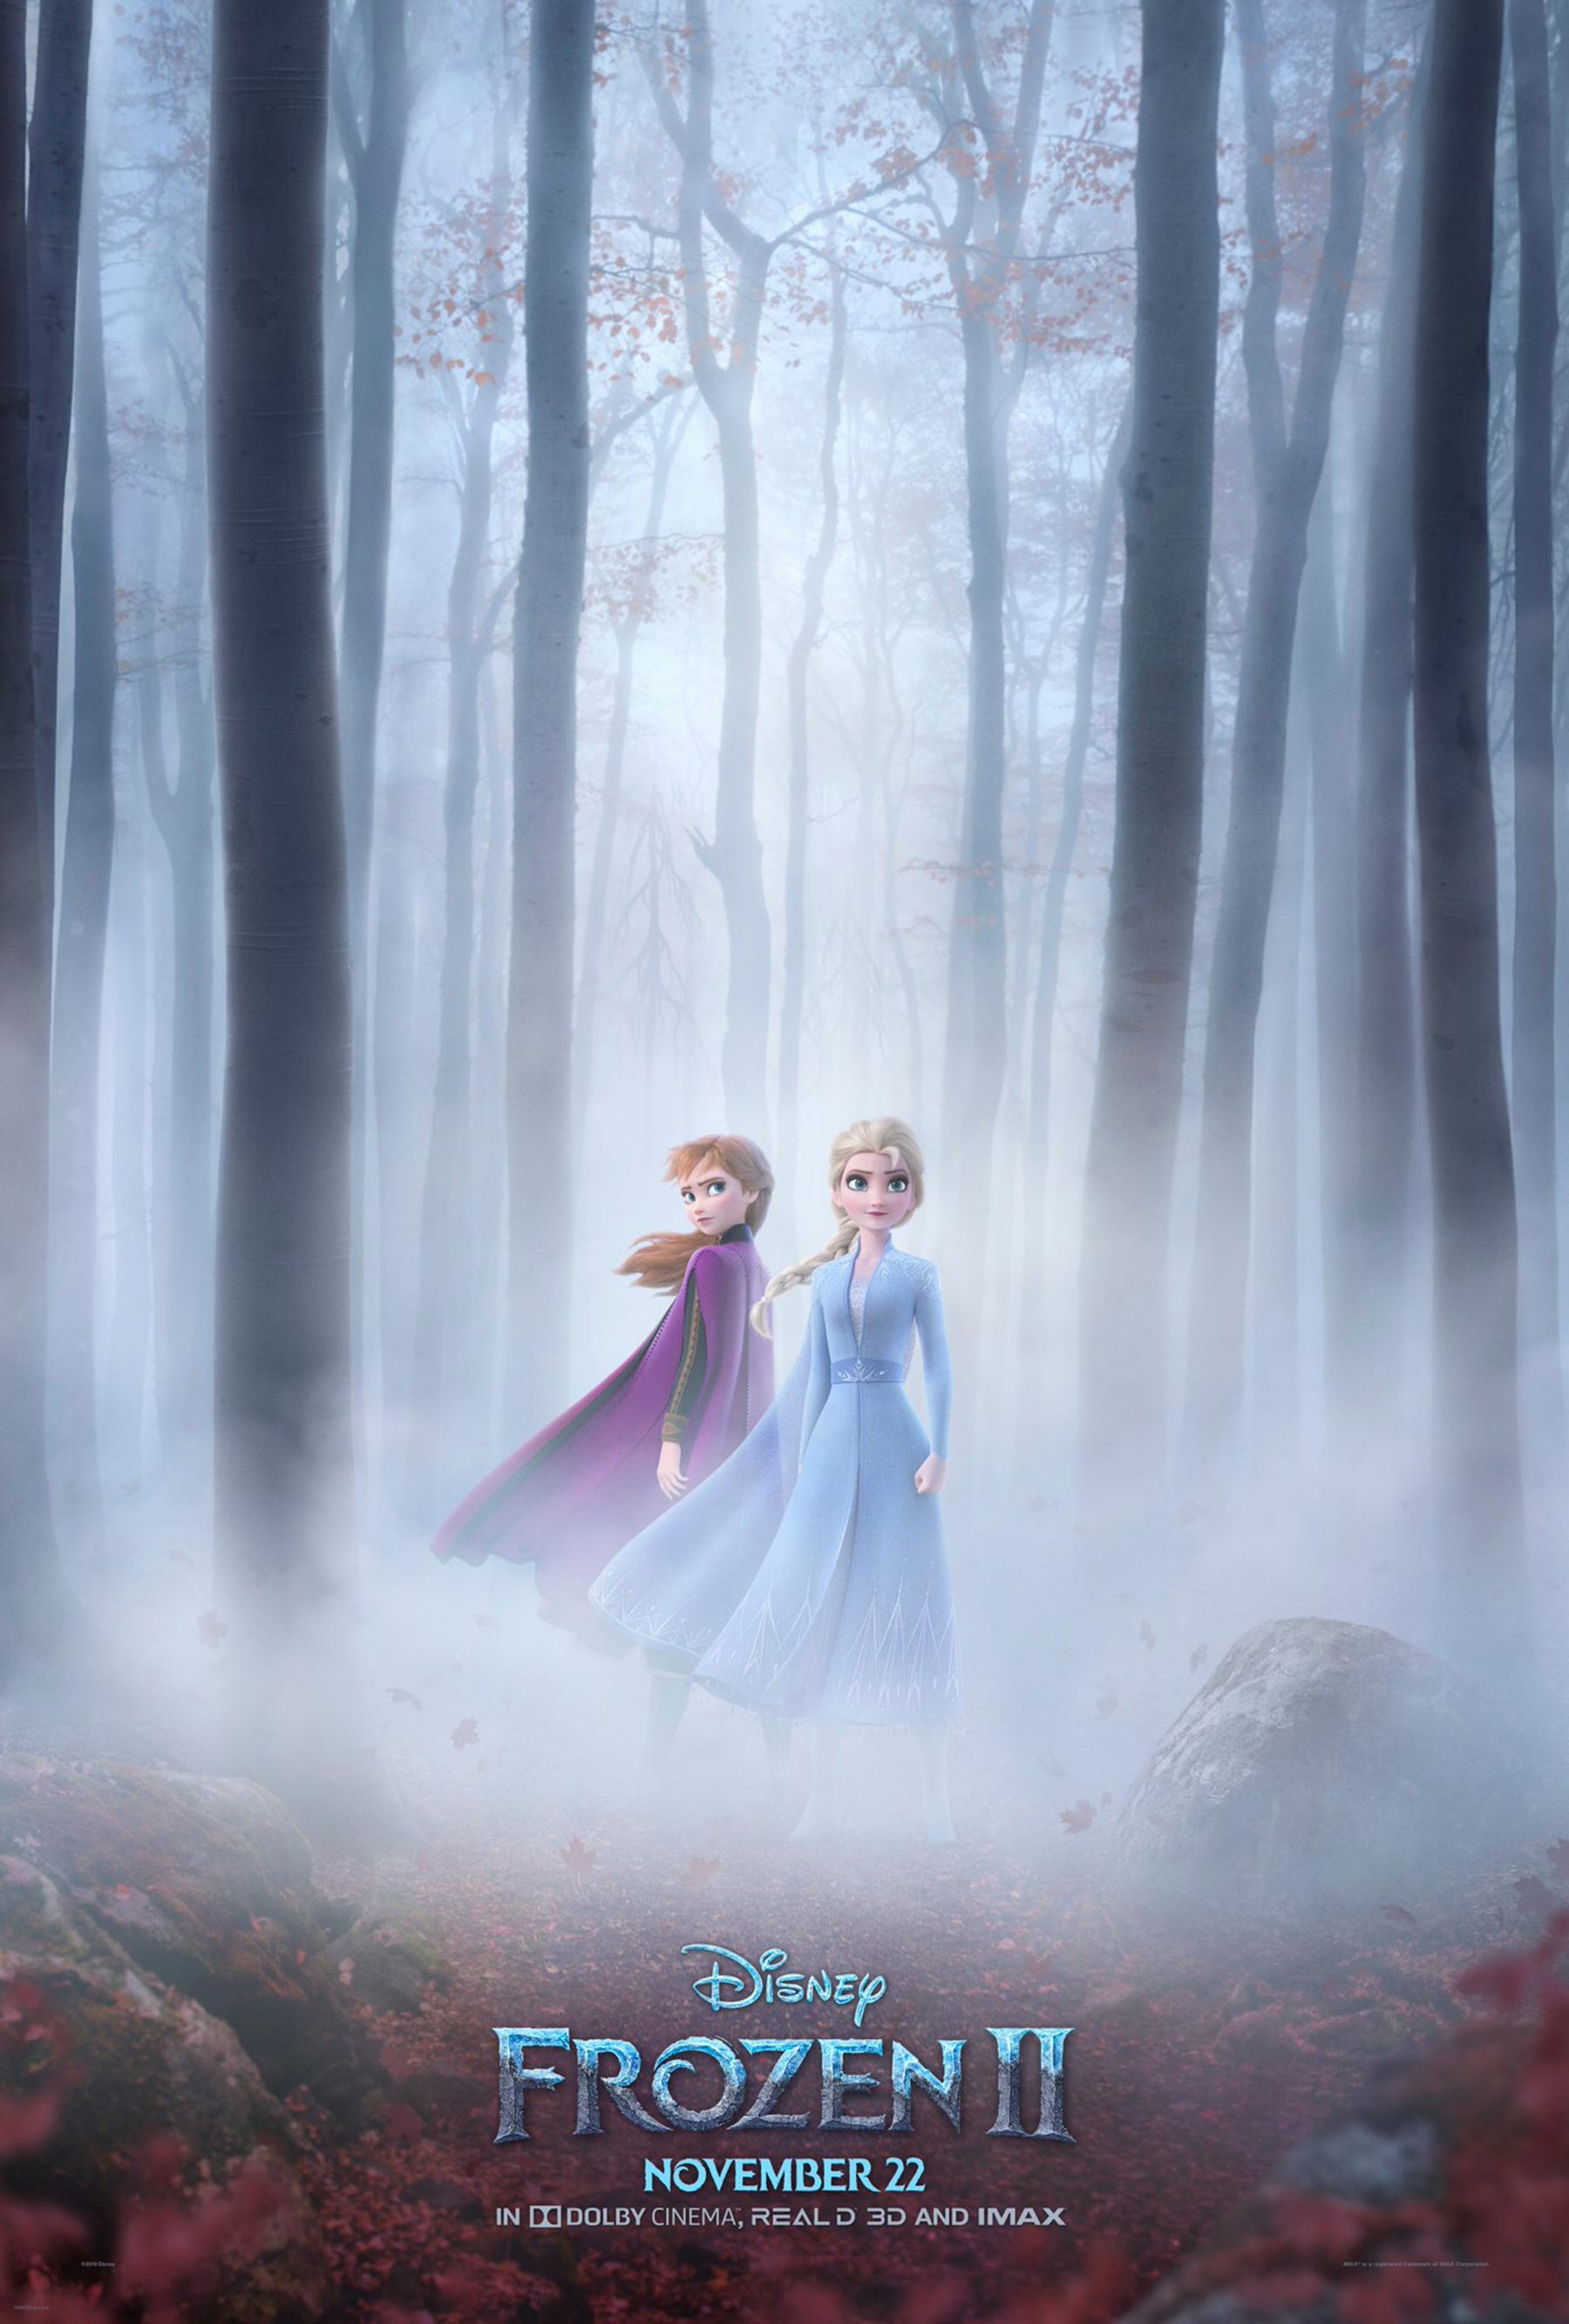 Frozen 2: Elsa and Anna Are All Business in Moody New Poster for Disney Sequel